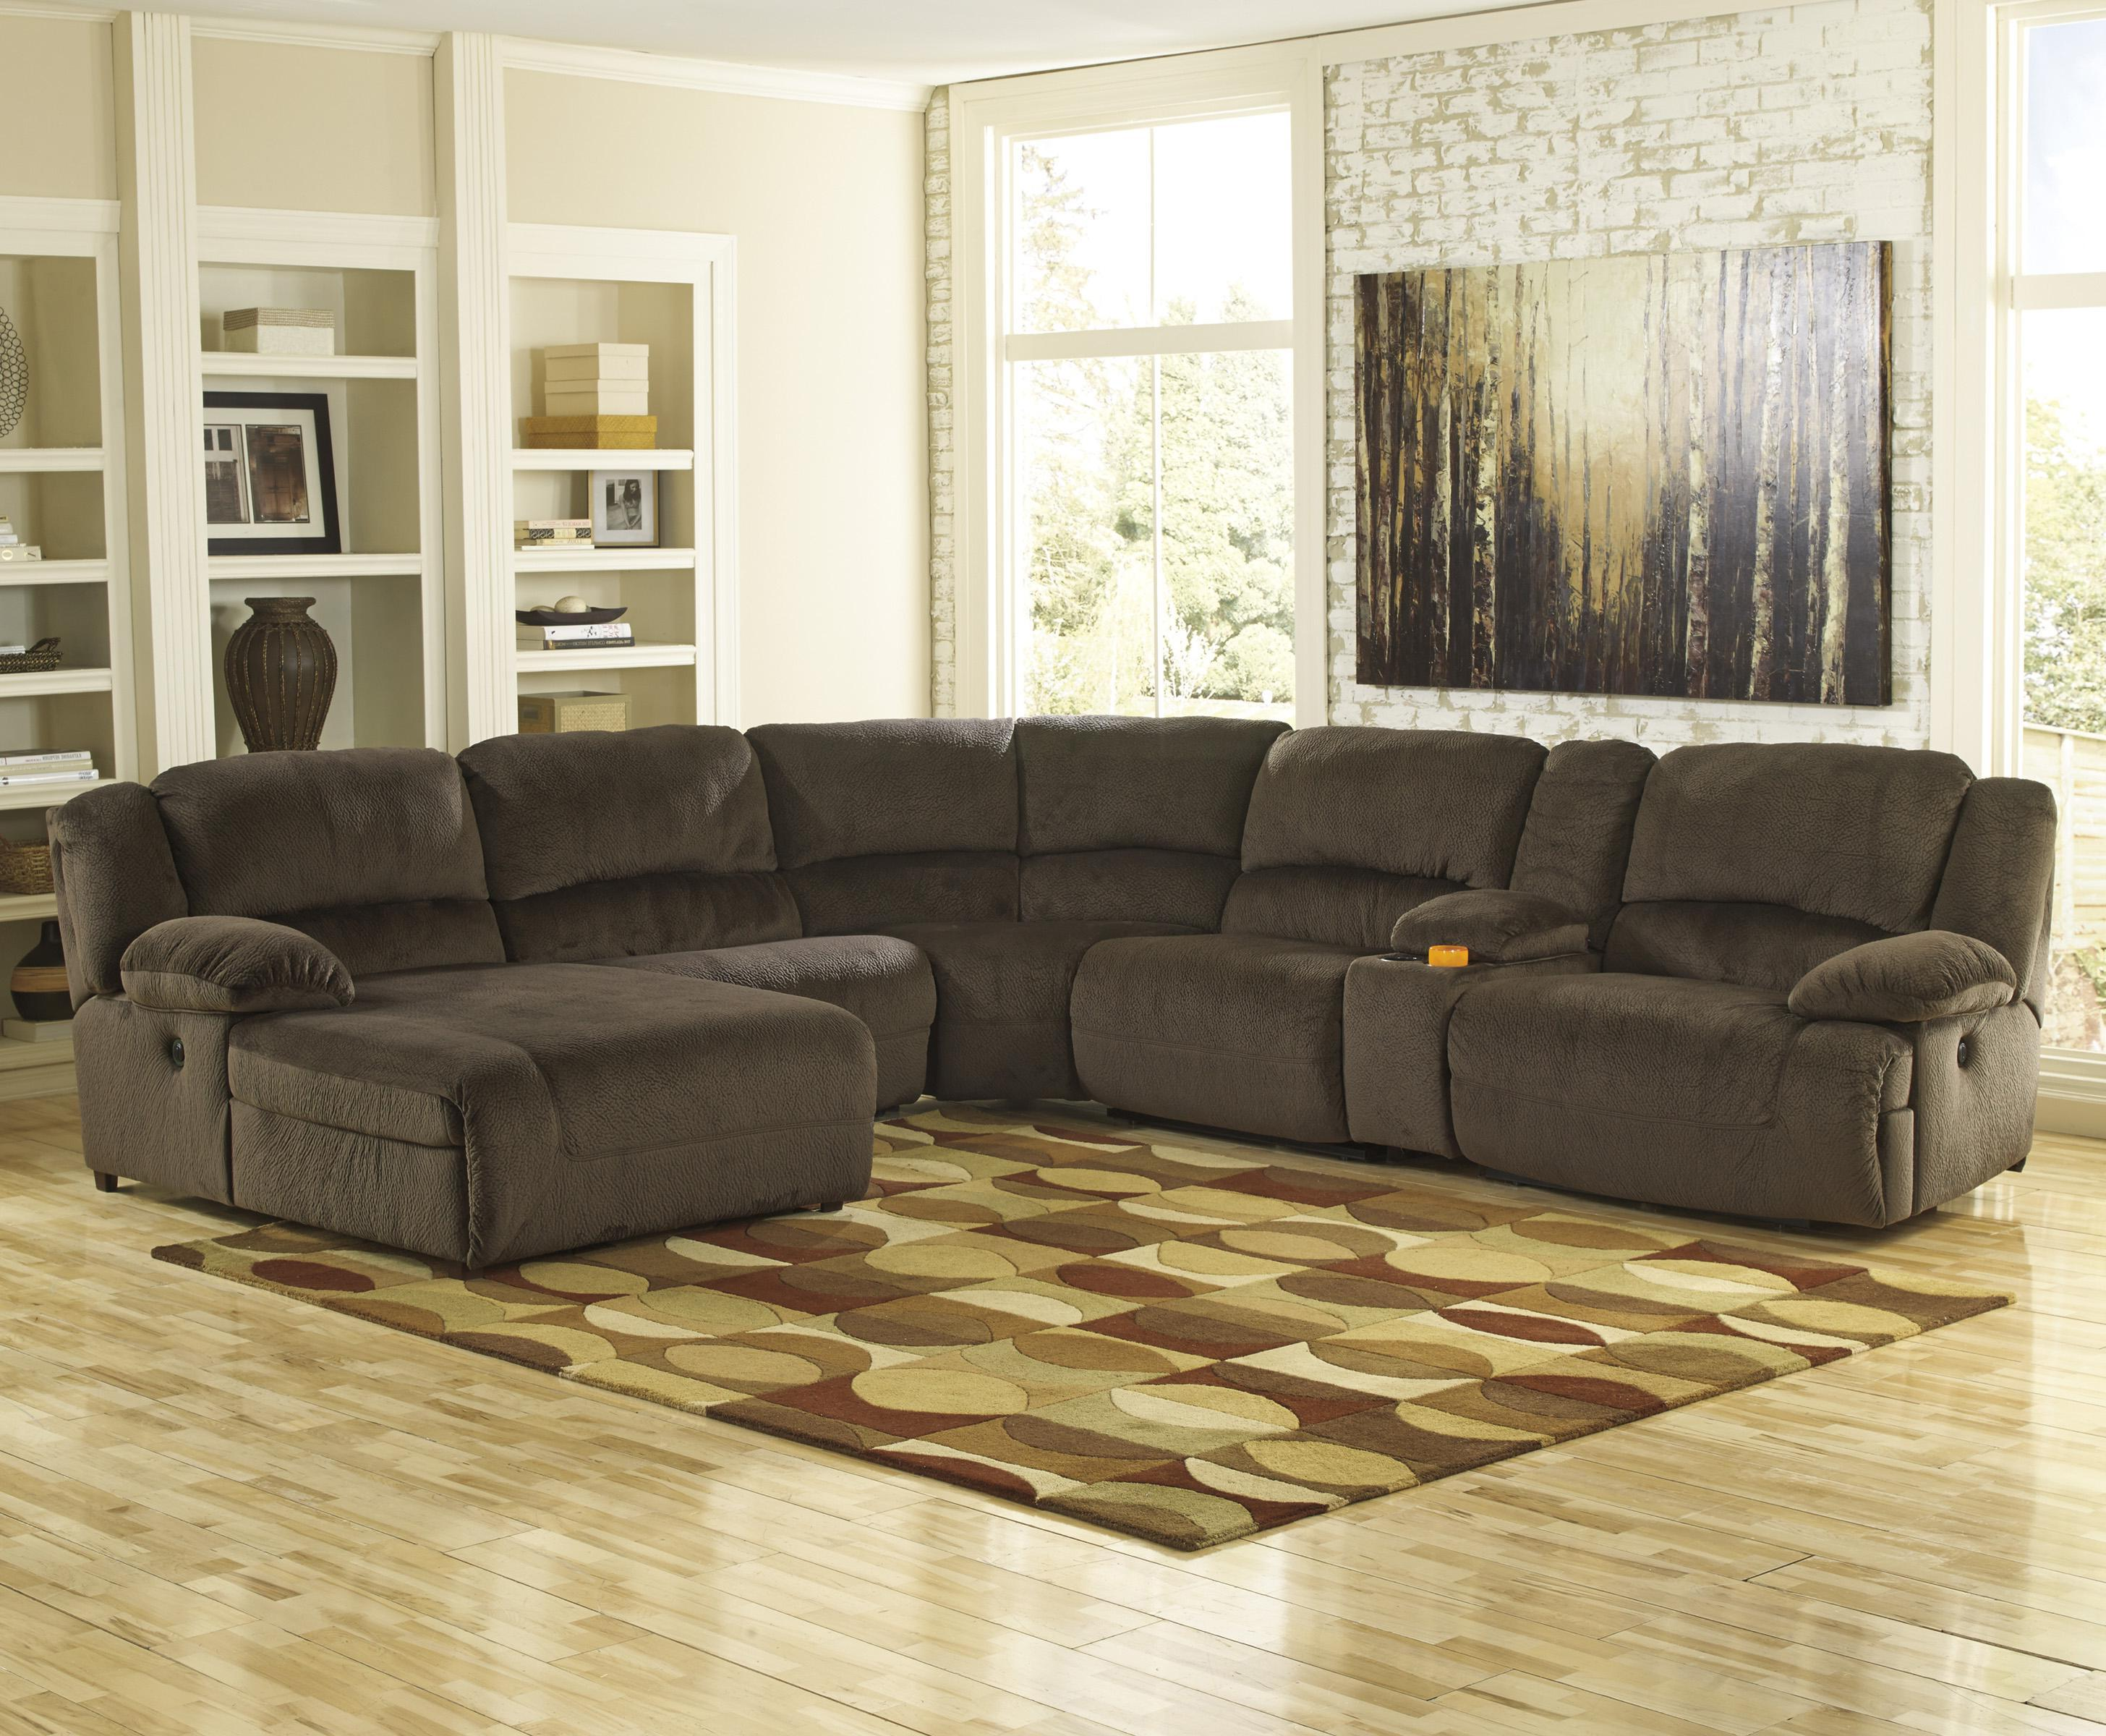 Signature Design by Ashley Toletta - Chocolate Reclining Sectional w/ Console & Chaise - Item Number: 5670105+46+77+19+57+41